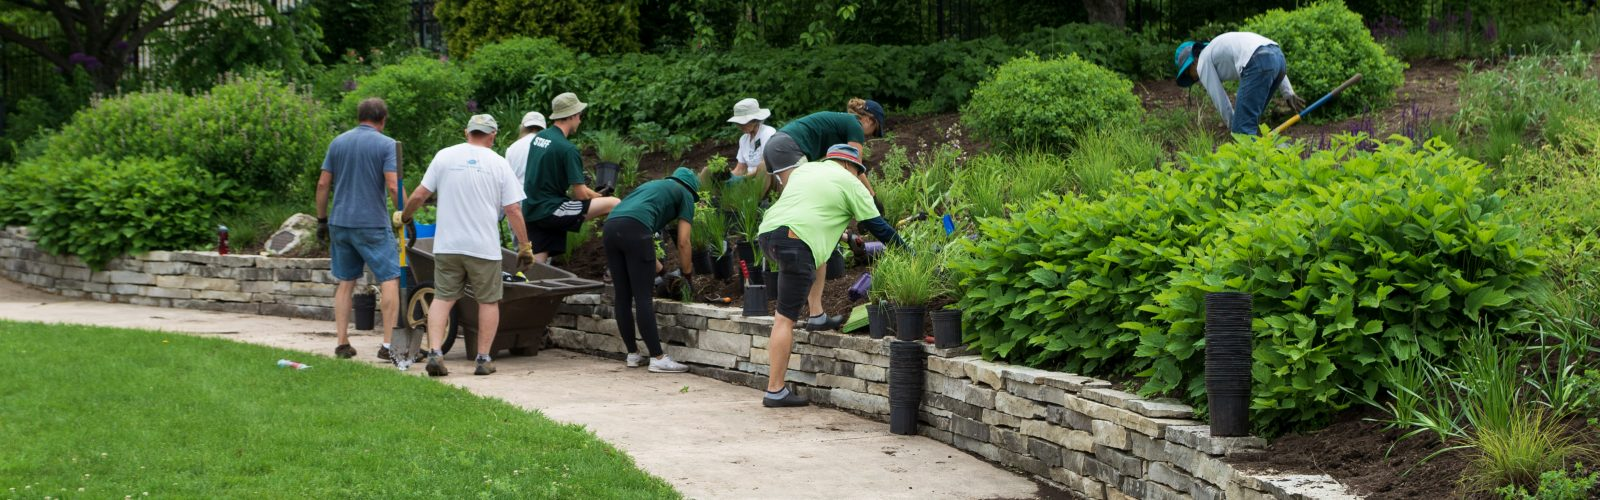 Staff with Volunteers in New American Garden